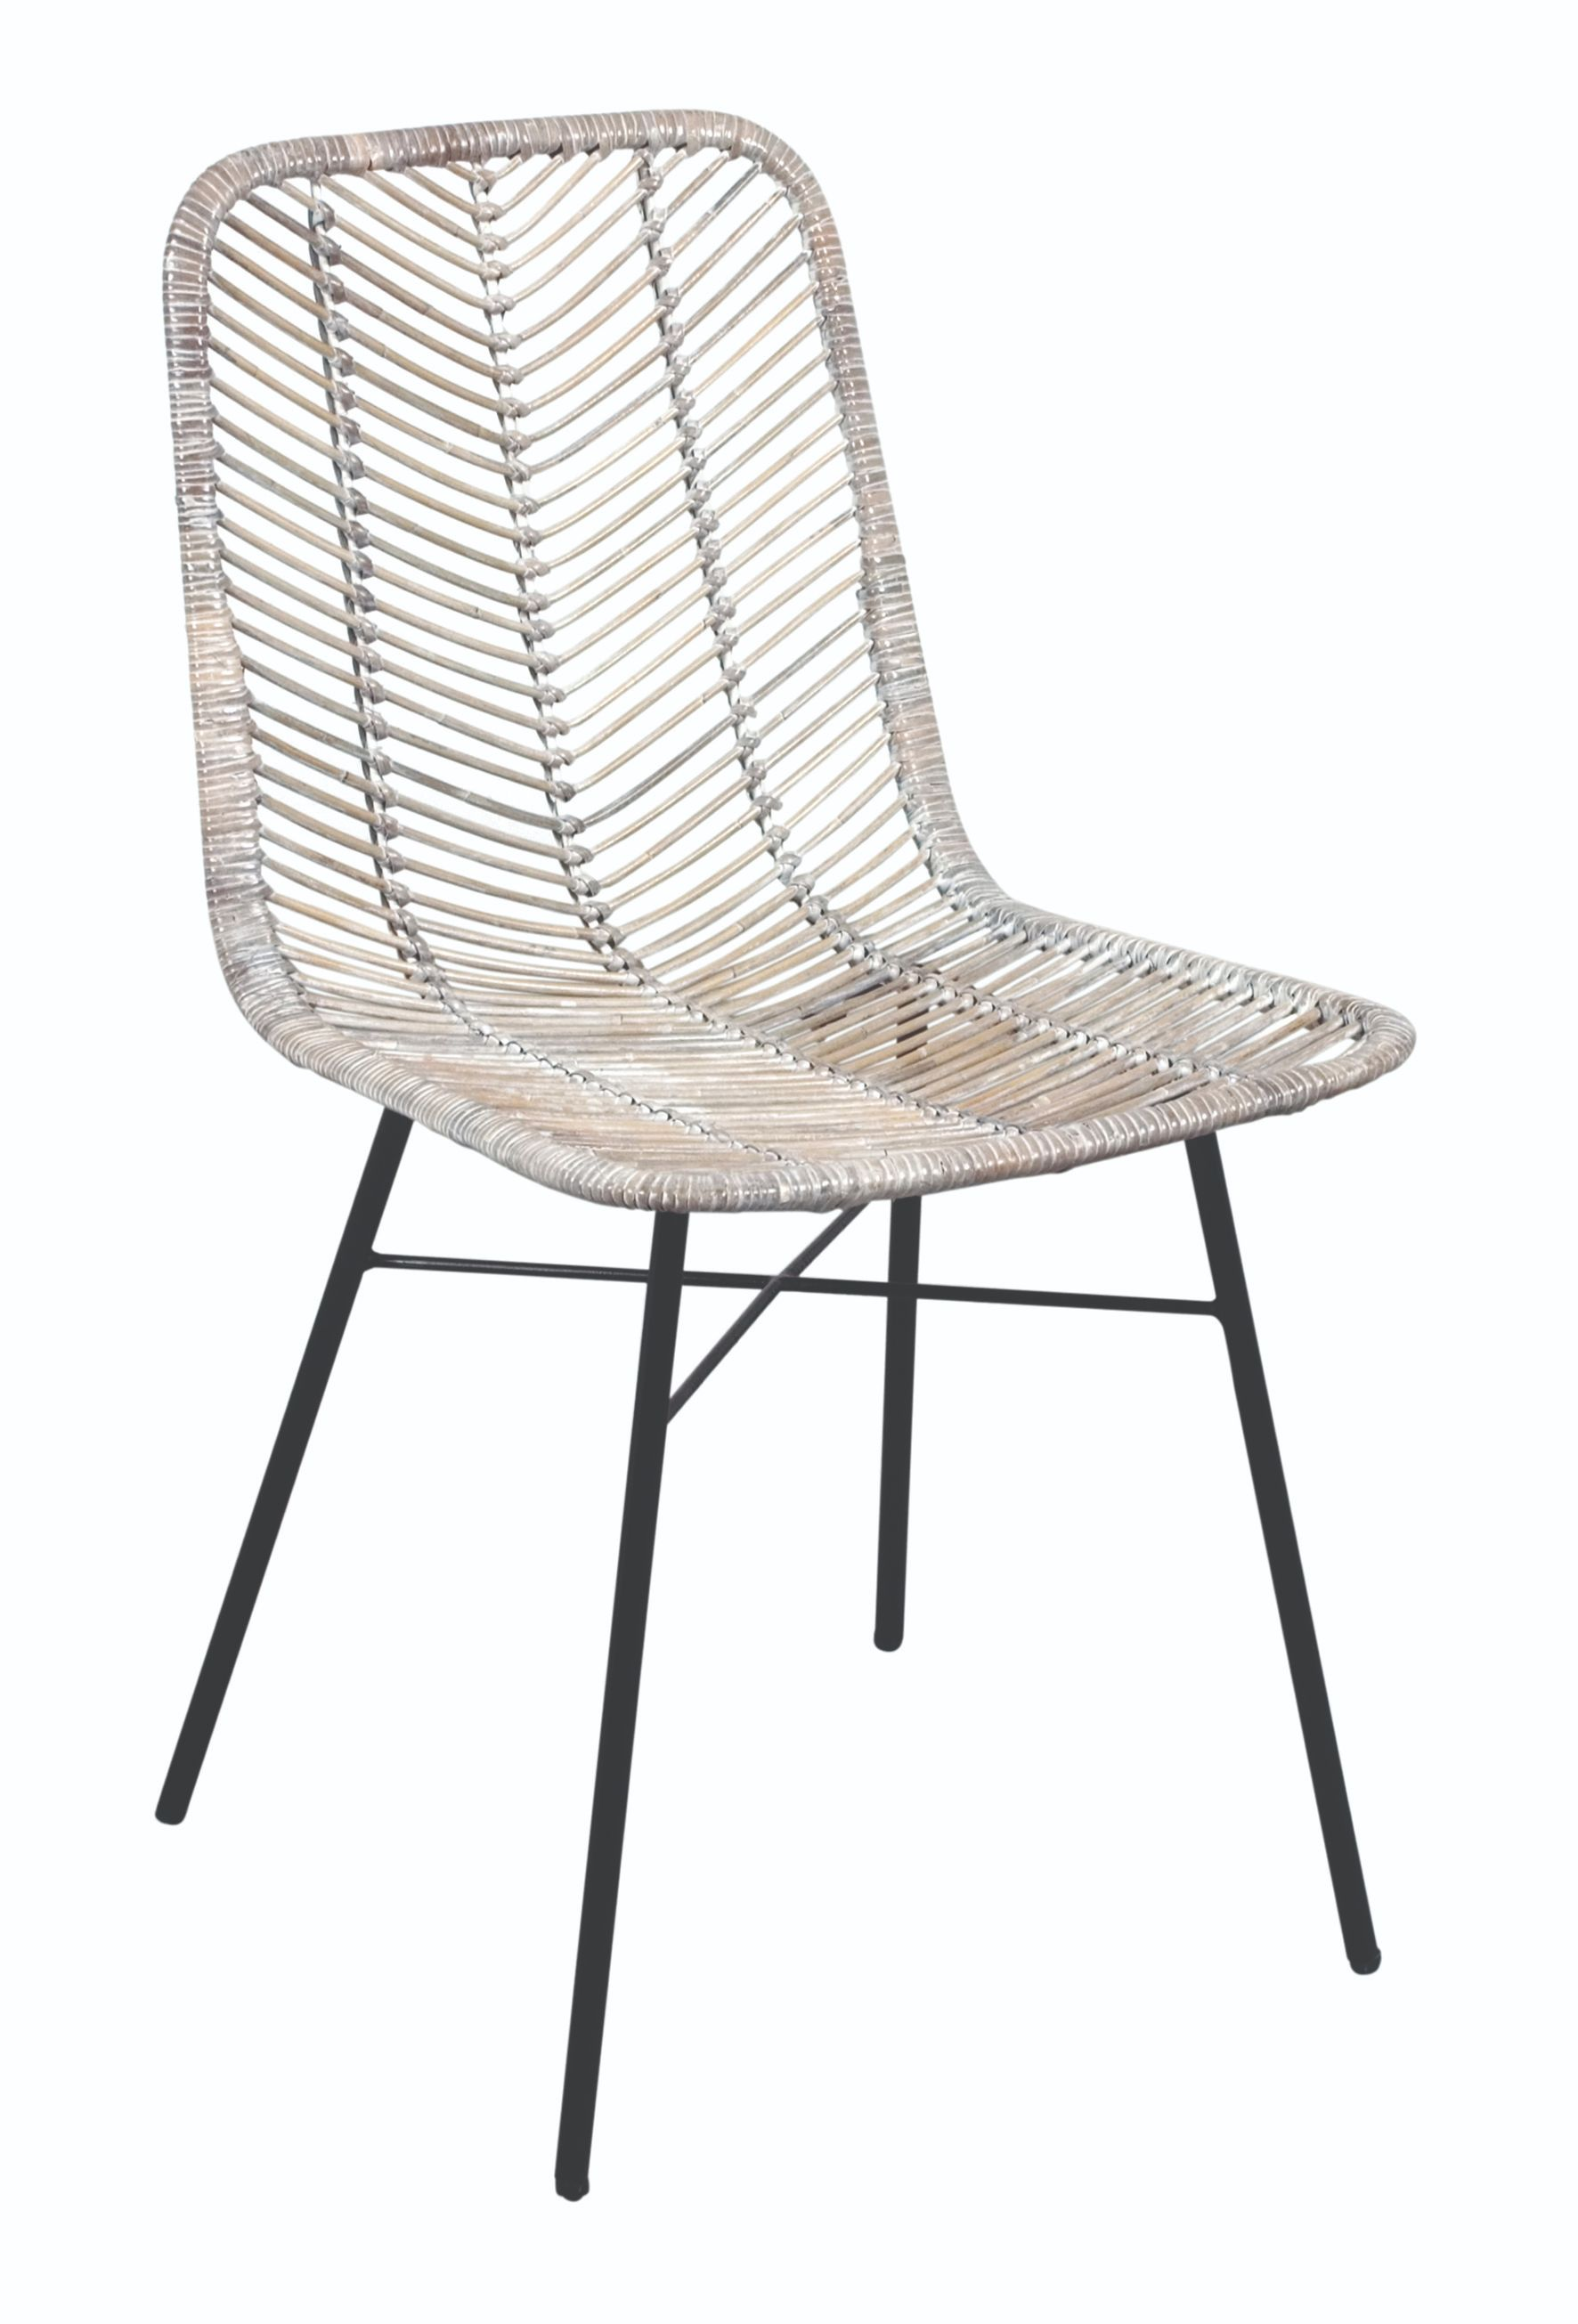 MAYA White Wash Rattan & Metal Chair